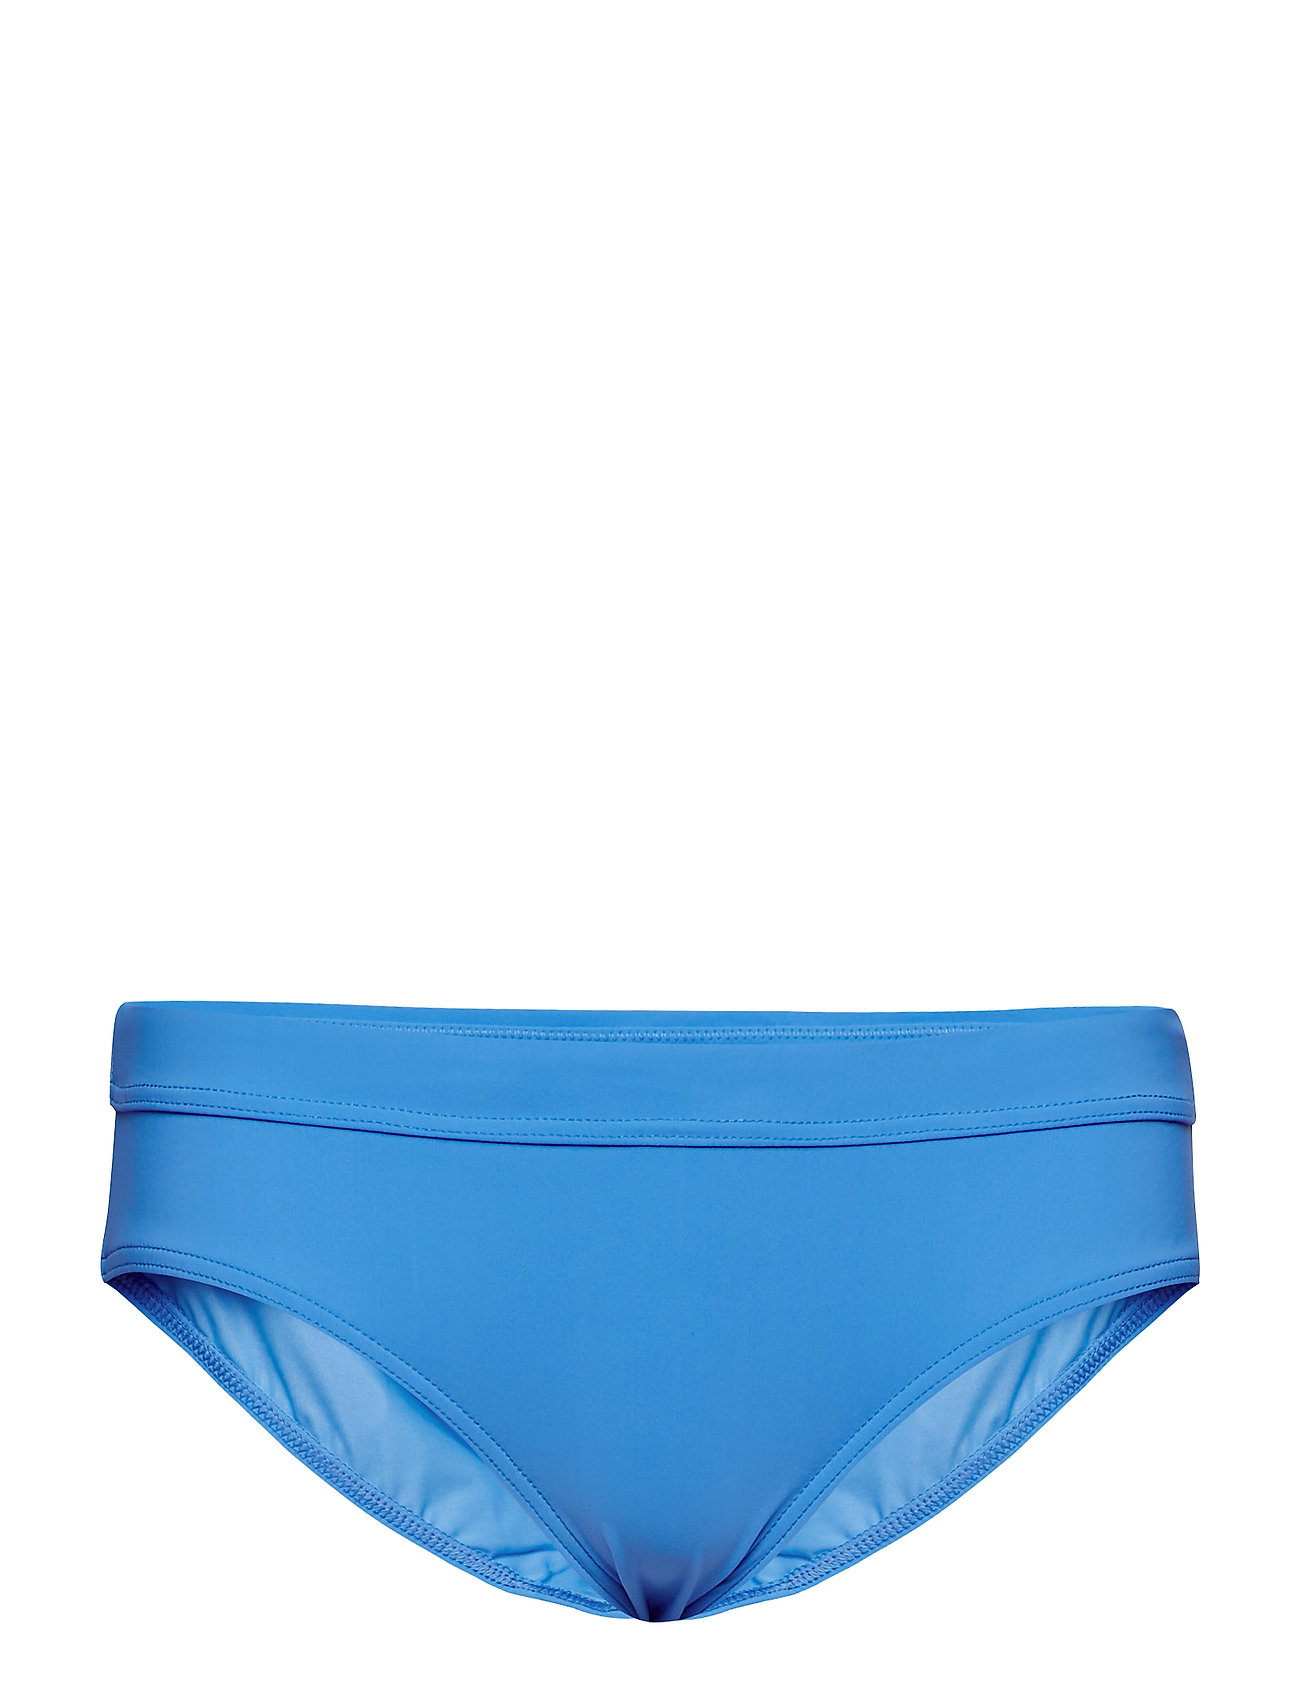 Filippa K Soft Sport Hip Bikini Bottom - FRENCH BLU